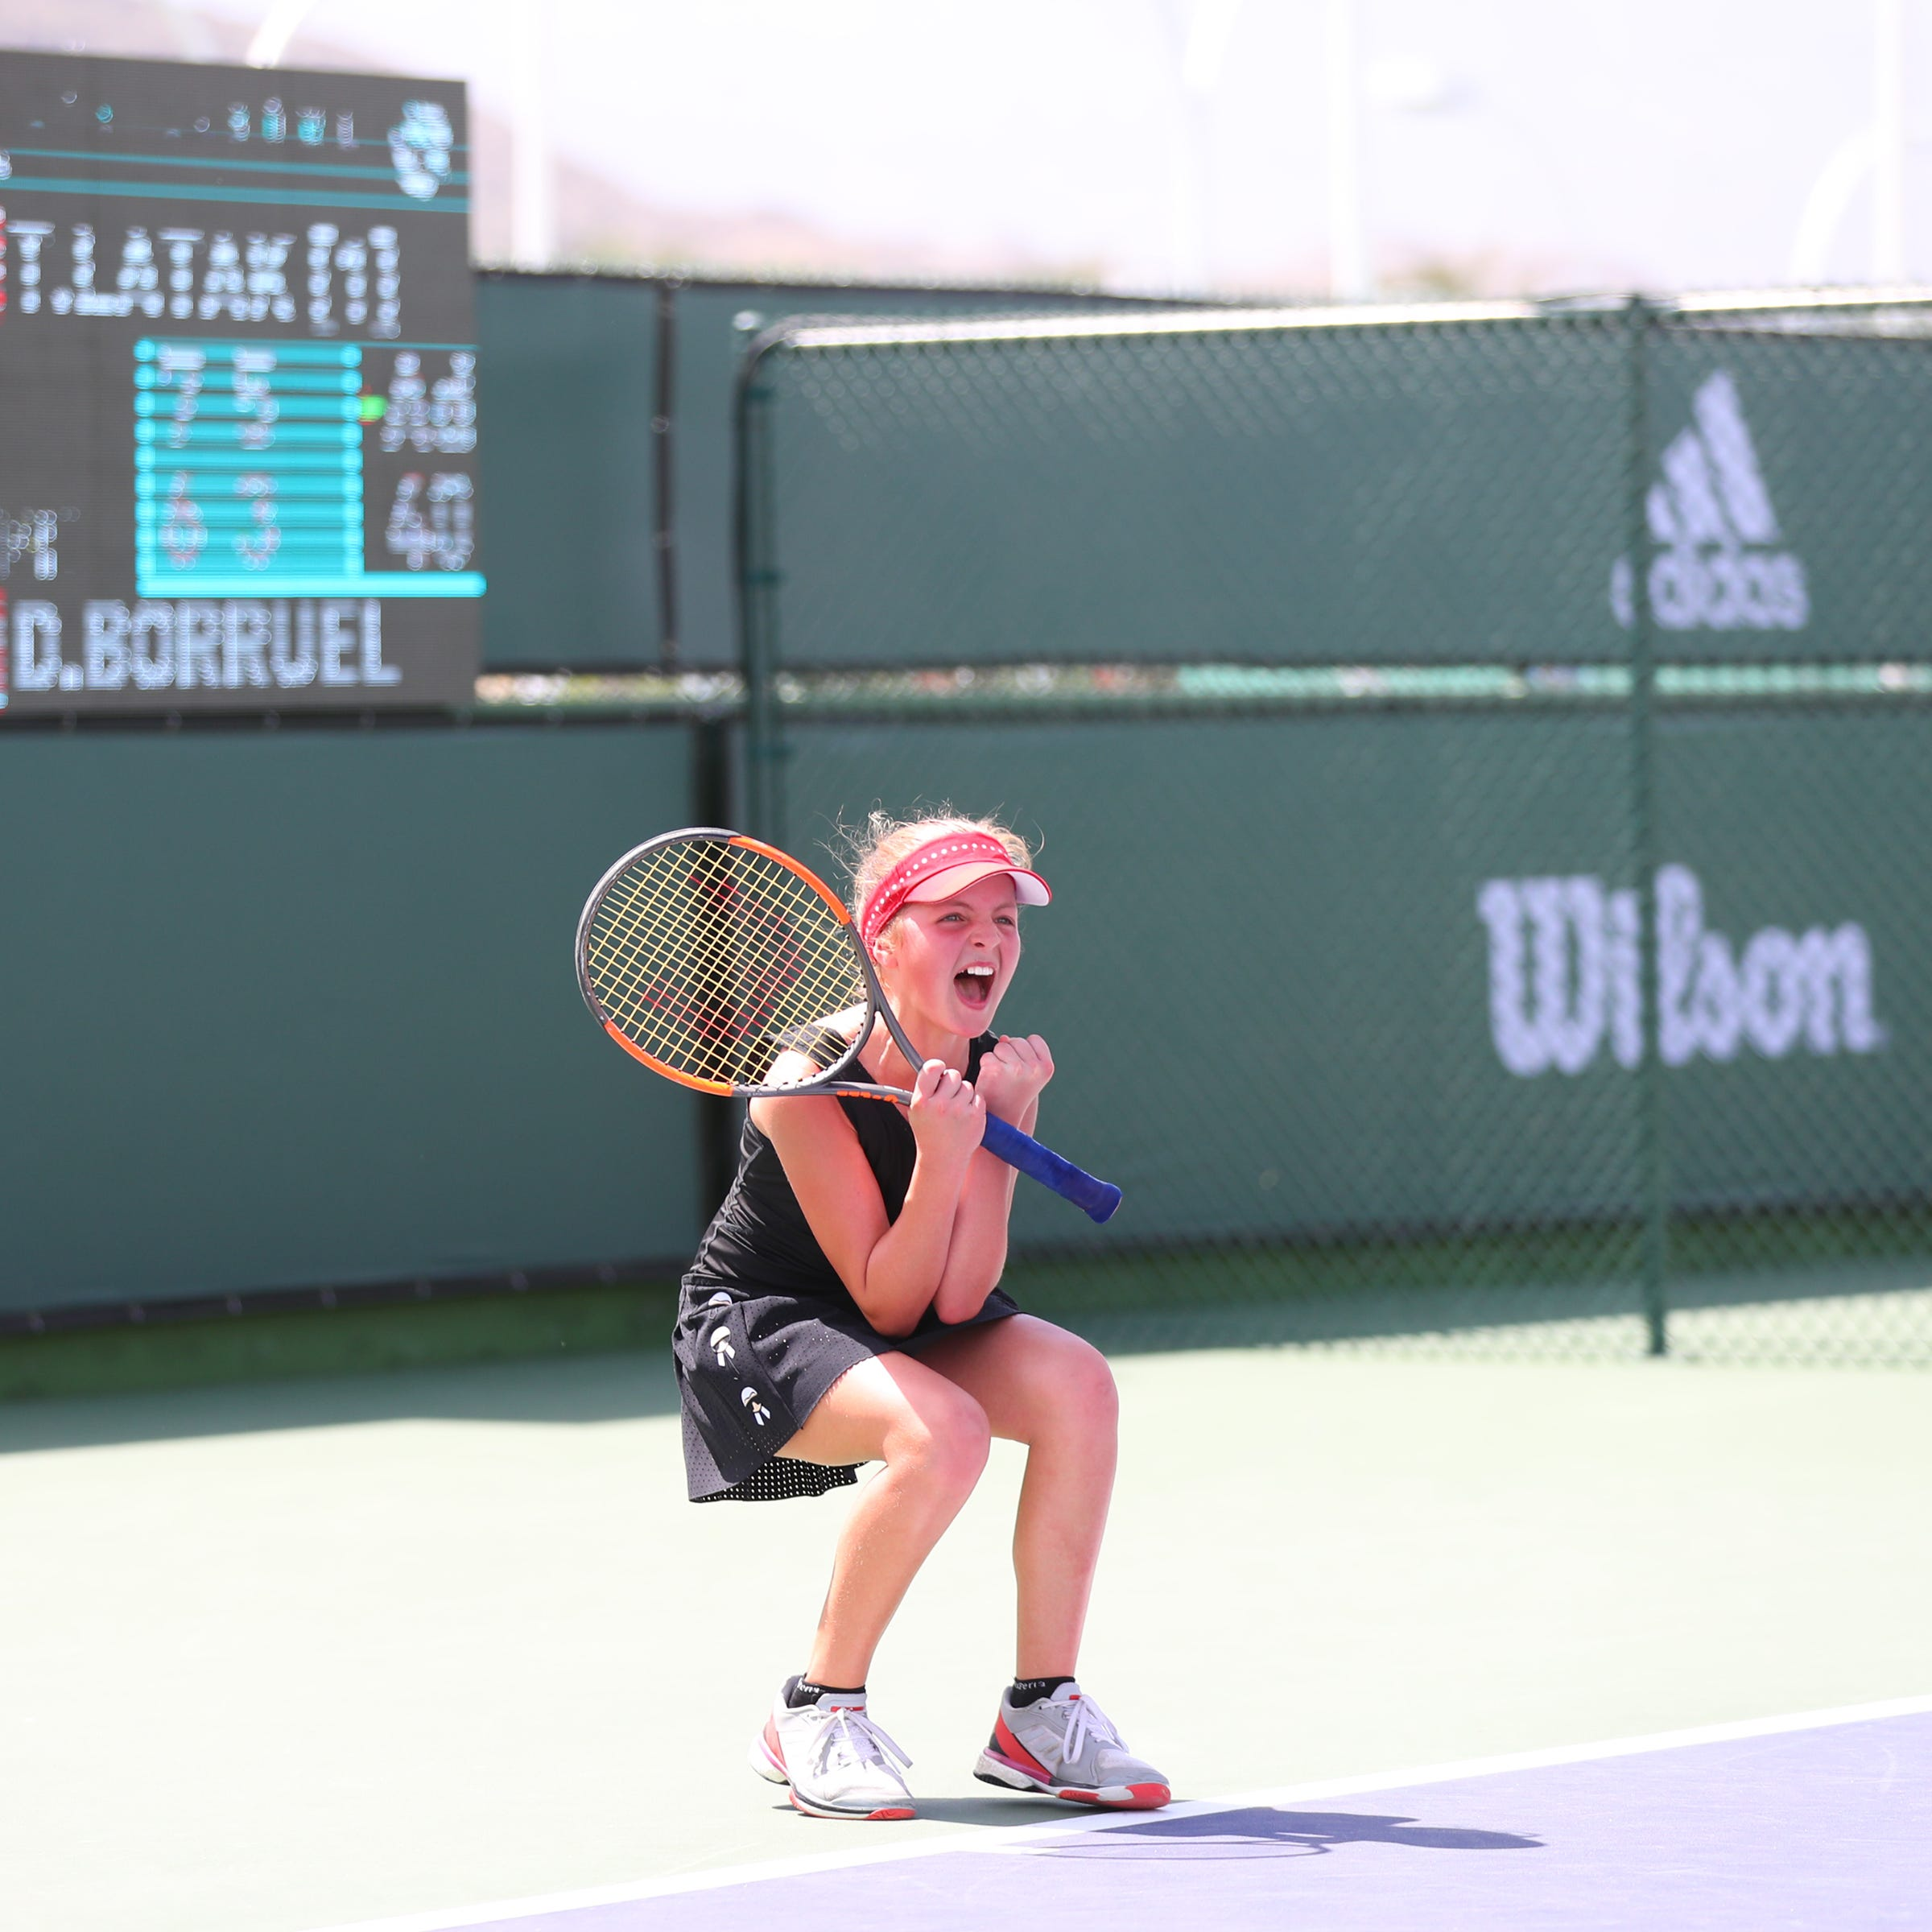 Easter Bowl winners emerge heading into final weekend in Indian Wells